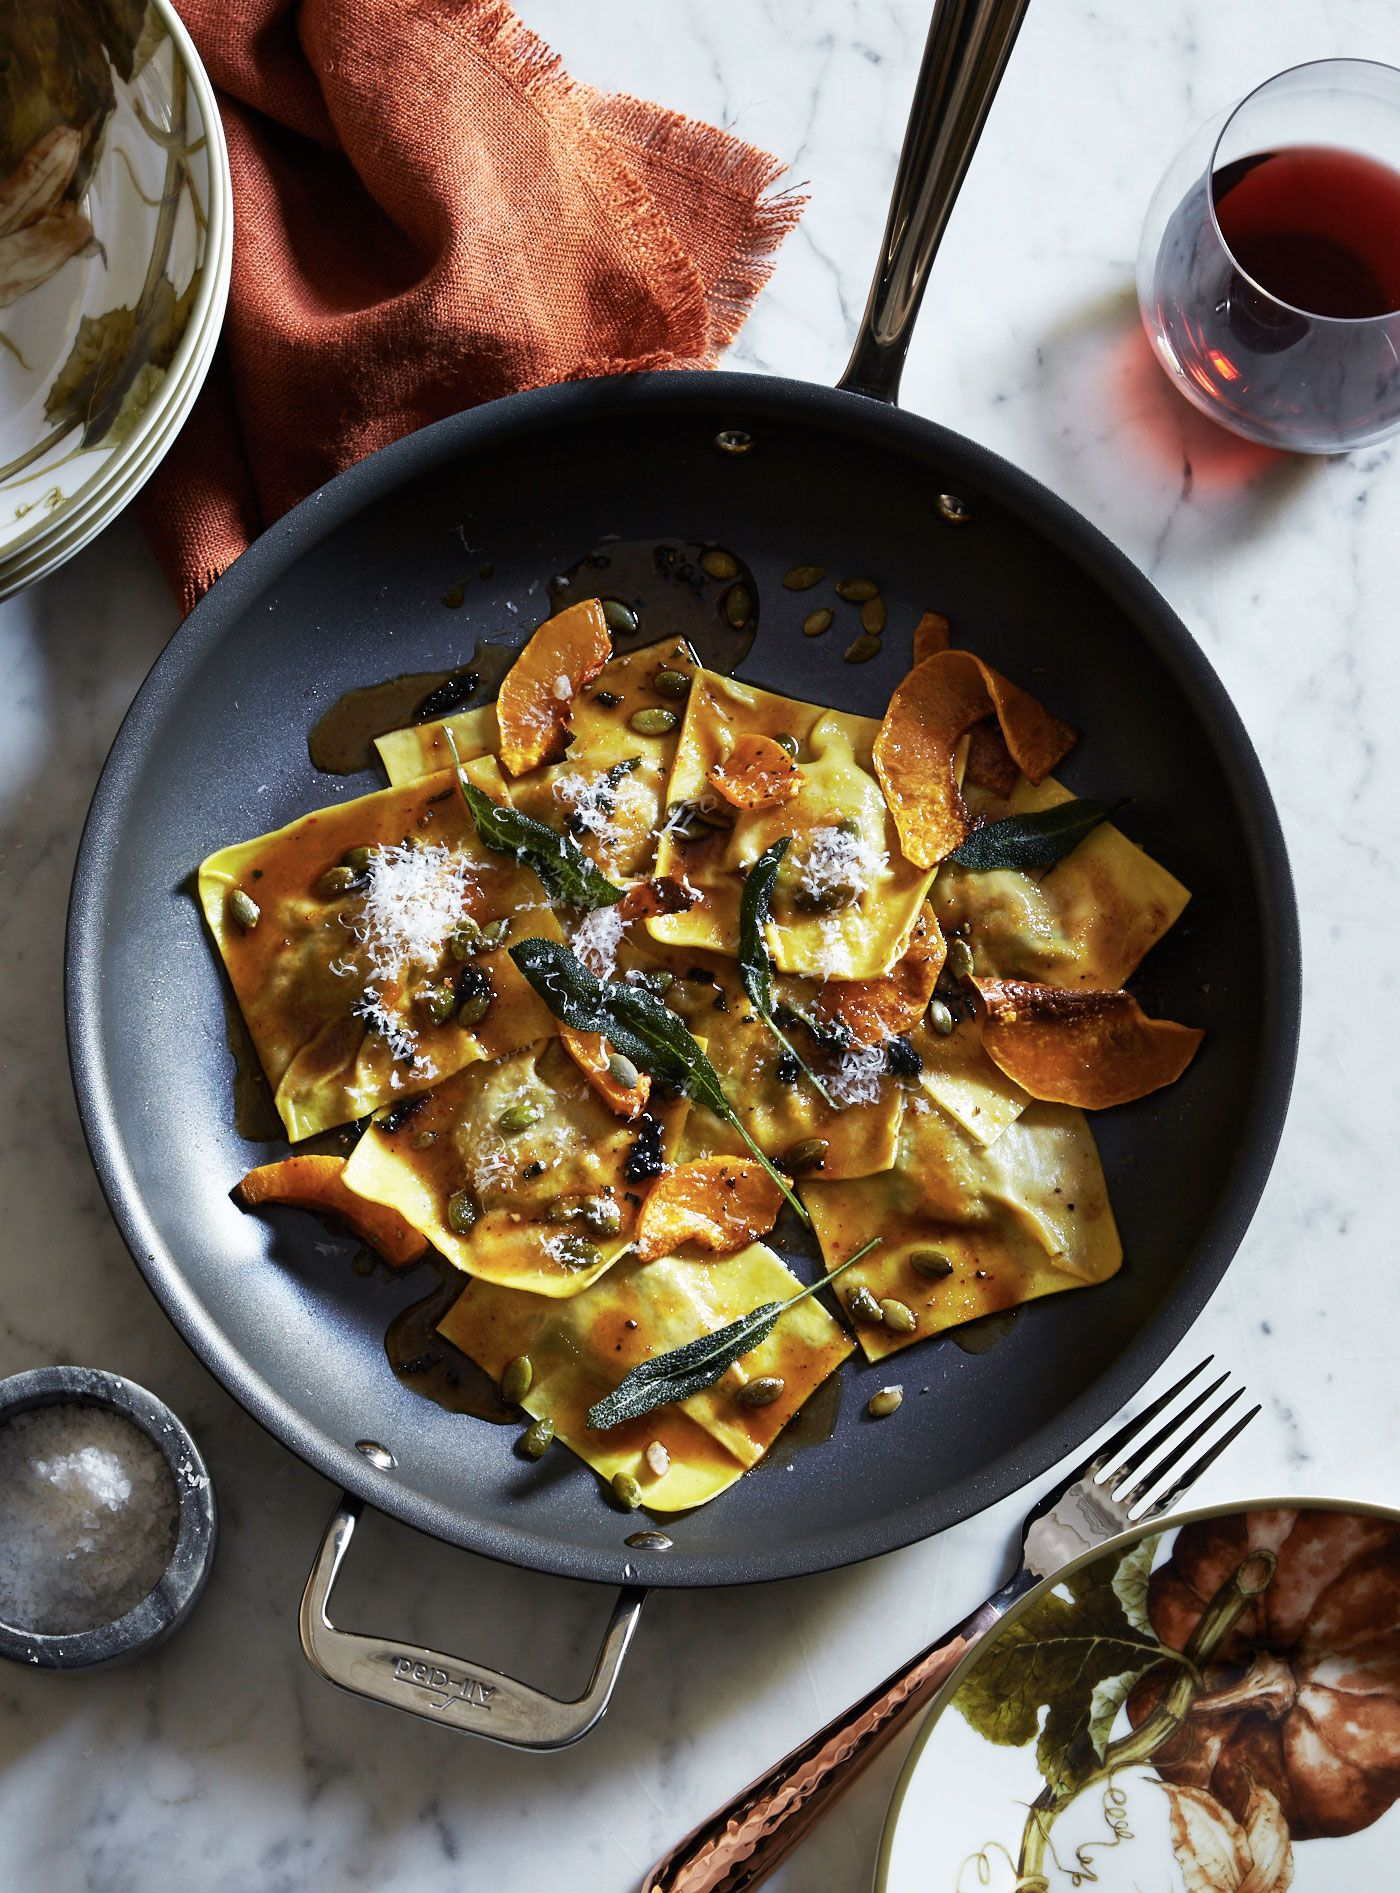 This lovely pasta dish highlights butternut squash, an ingredient that reminds us of the fall harvest. A simple sauce of lightly browned butter and fresh sage provides a savory counterpoint to the sweetness of the squash.